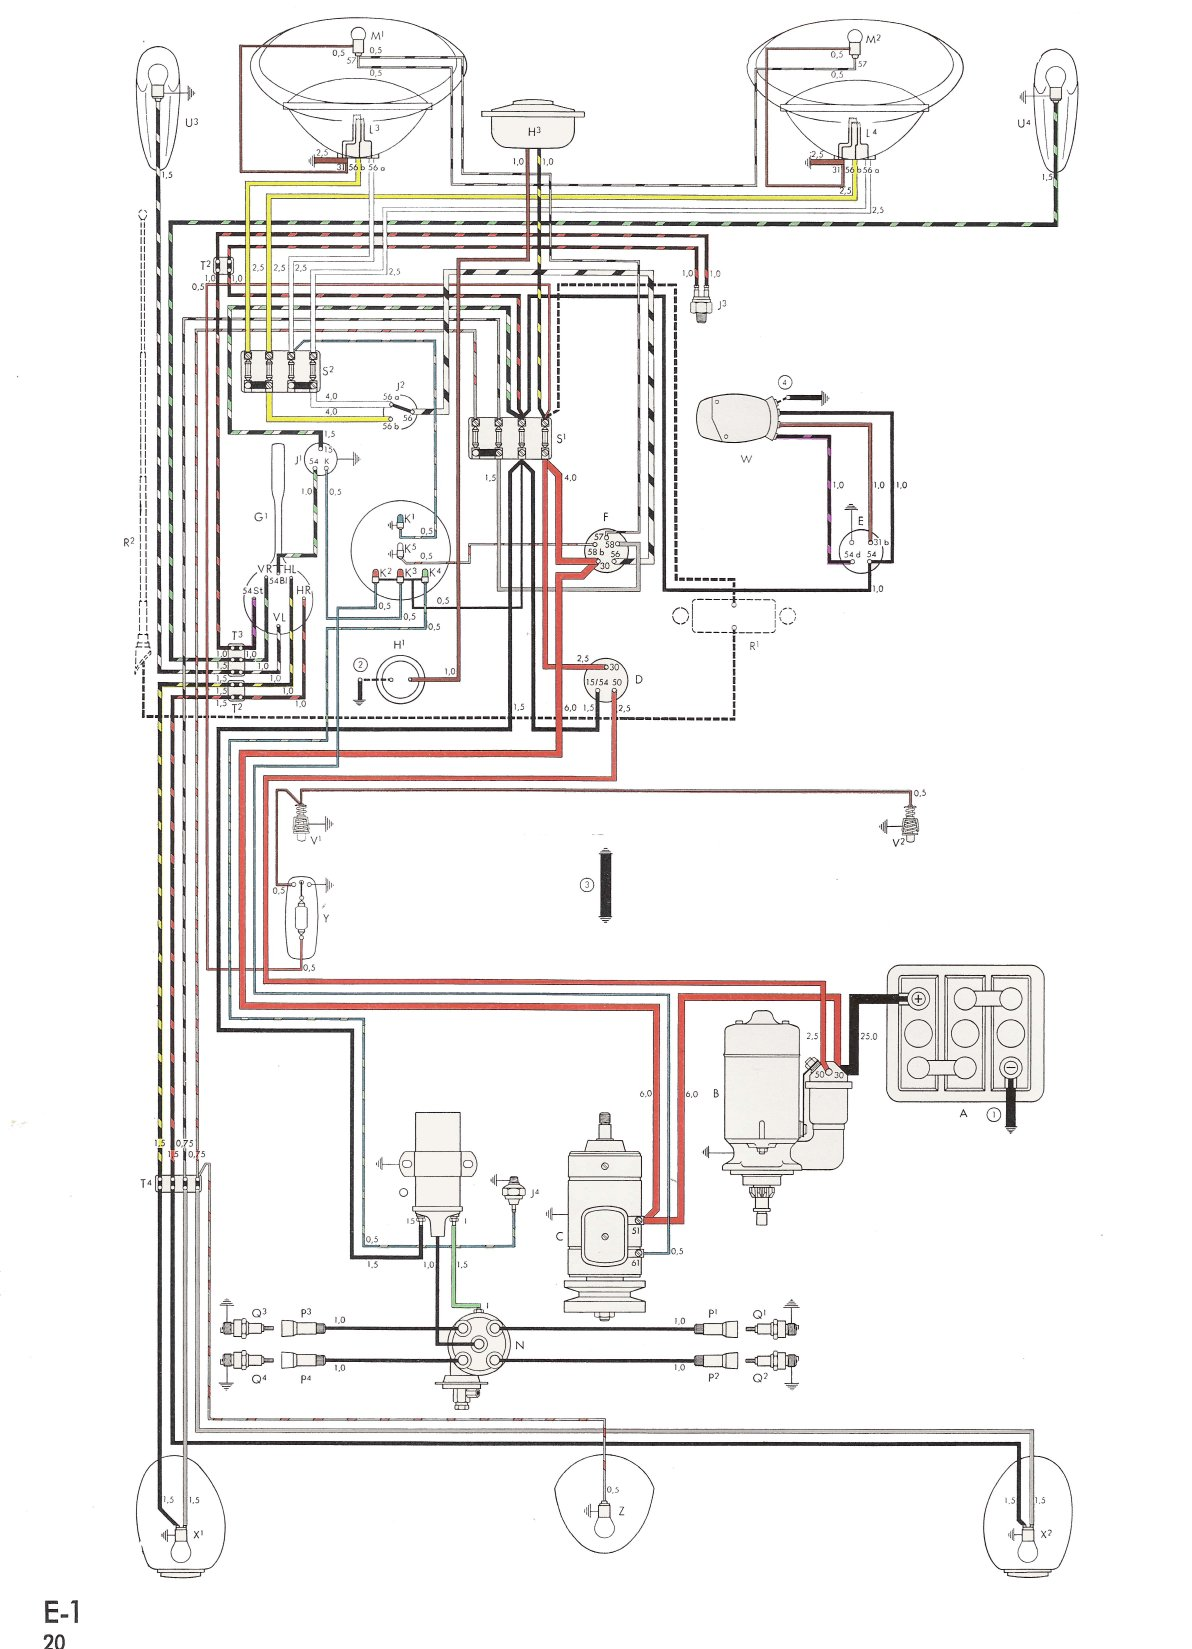 thesamba type 1 wiring diagrams images thesamba type 1 wiring thesambacom type 1 wiring diagrams